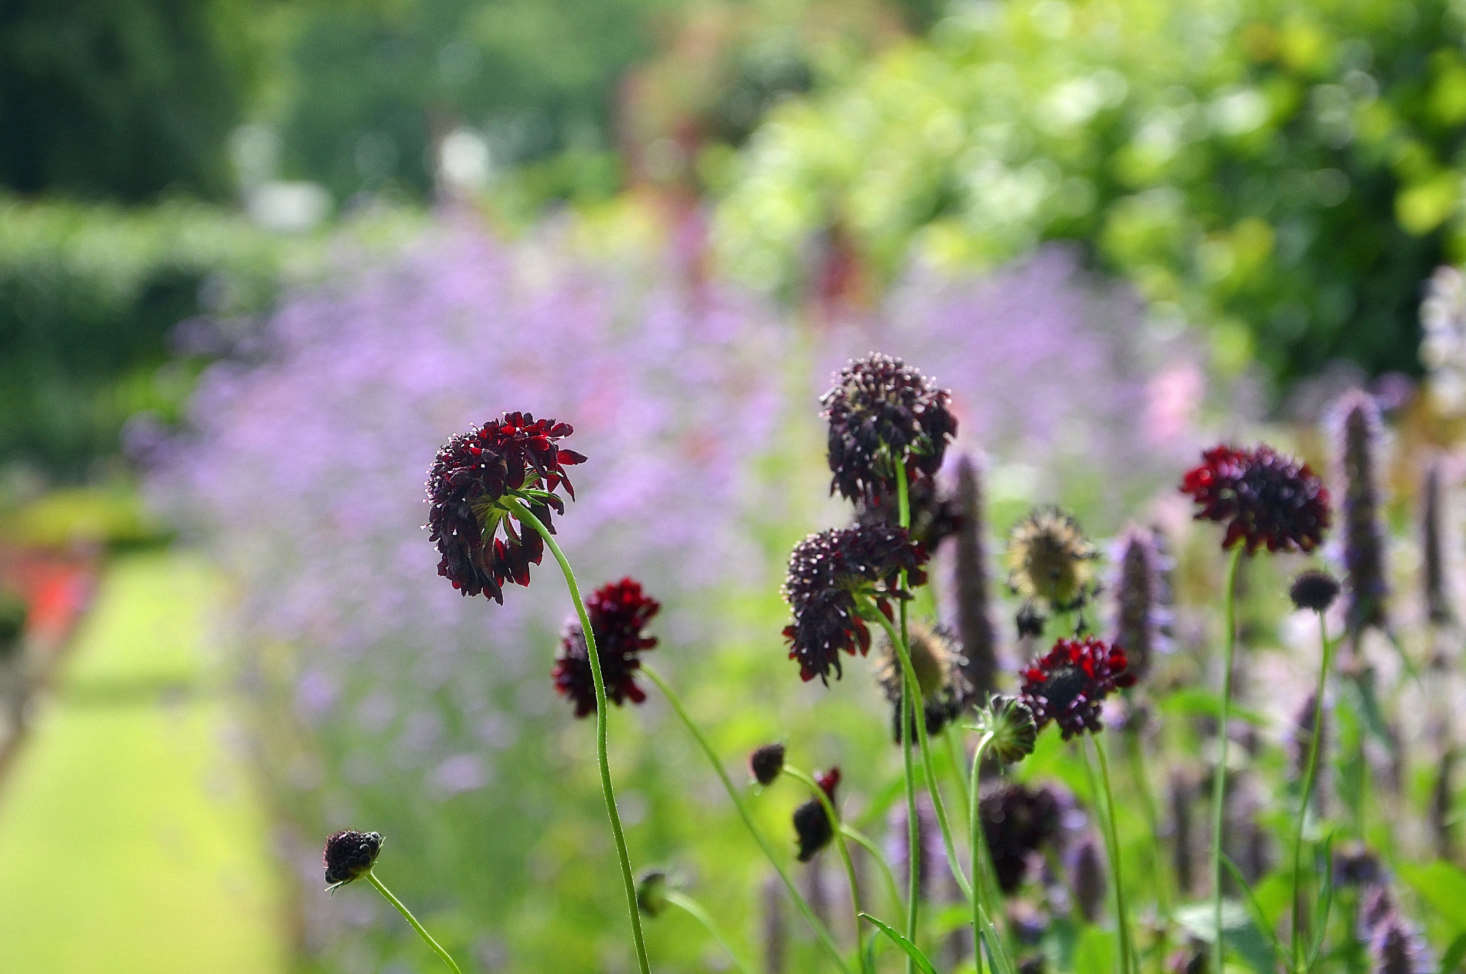 Scabiosa in the sunken garden of Kensington Palace. Photograph by Dun.can via Flickr, from  Garden Ideas to Steal from Meghan Markle and Prince Harry at Home.